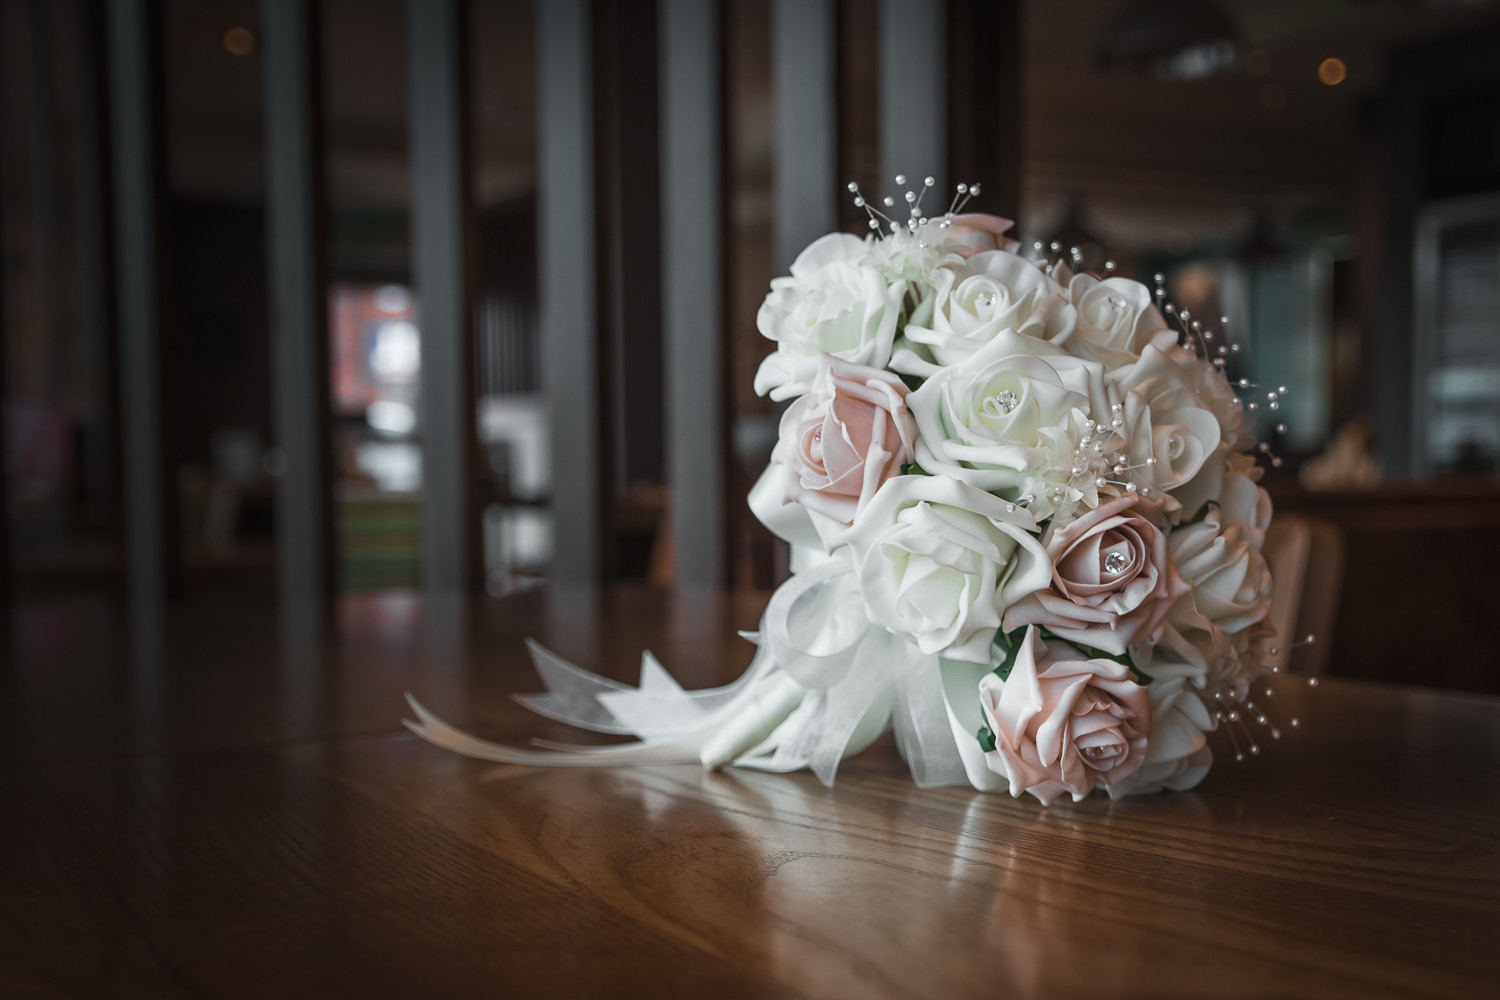 A bridal bouquet is shown in isolation.